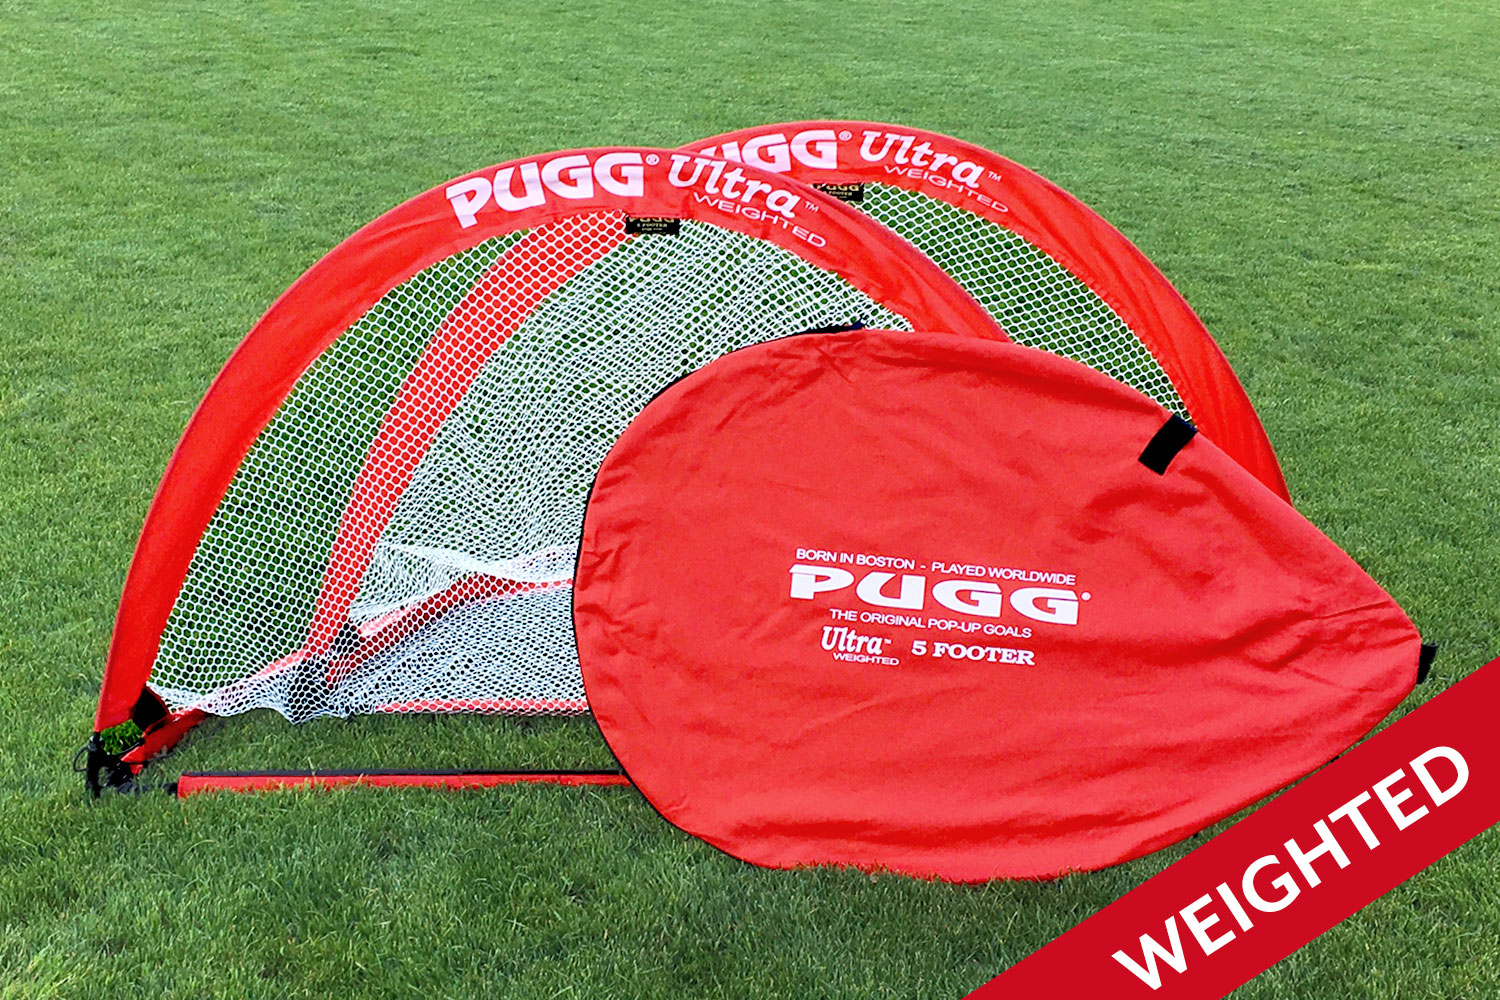 Pugg Ultra Q5 Weighted Pop-Up (Pair)